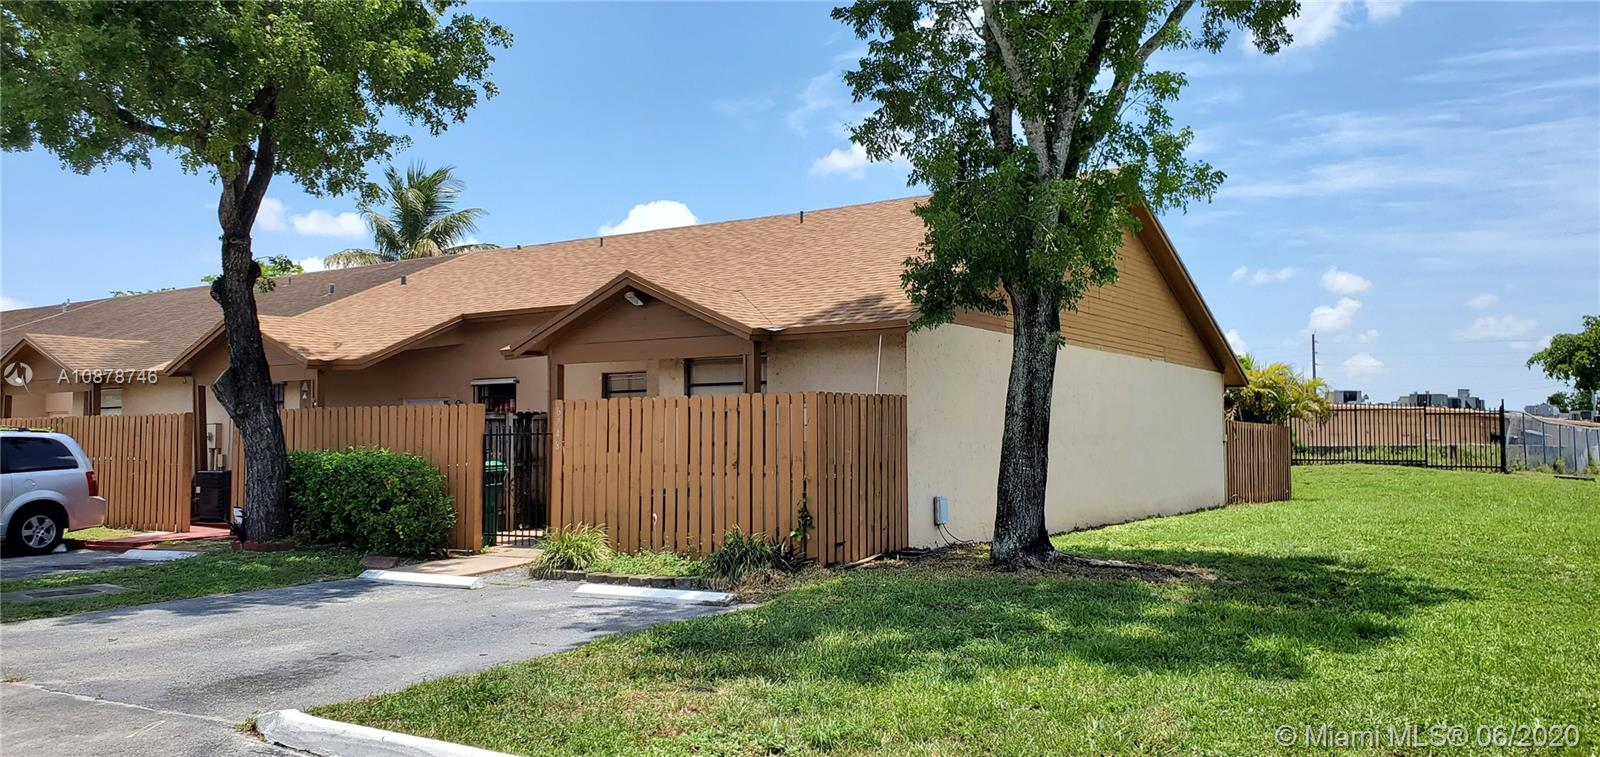 6748 NW 188th Ter #6748 Property Photo - Hialeah, FL real estate listing